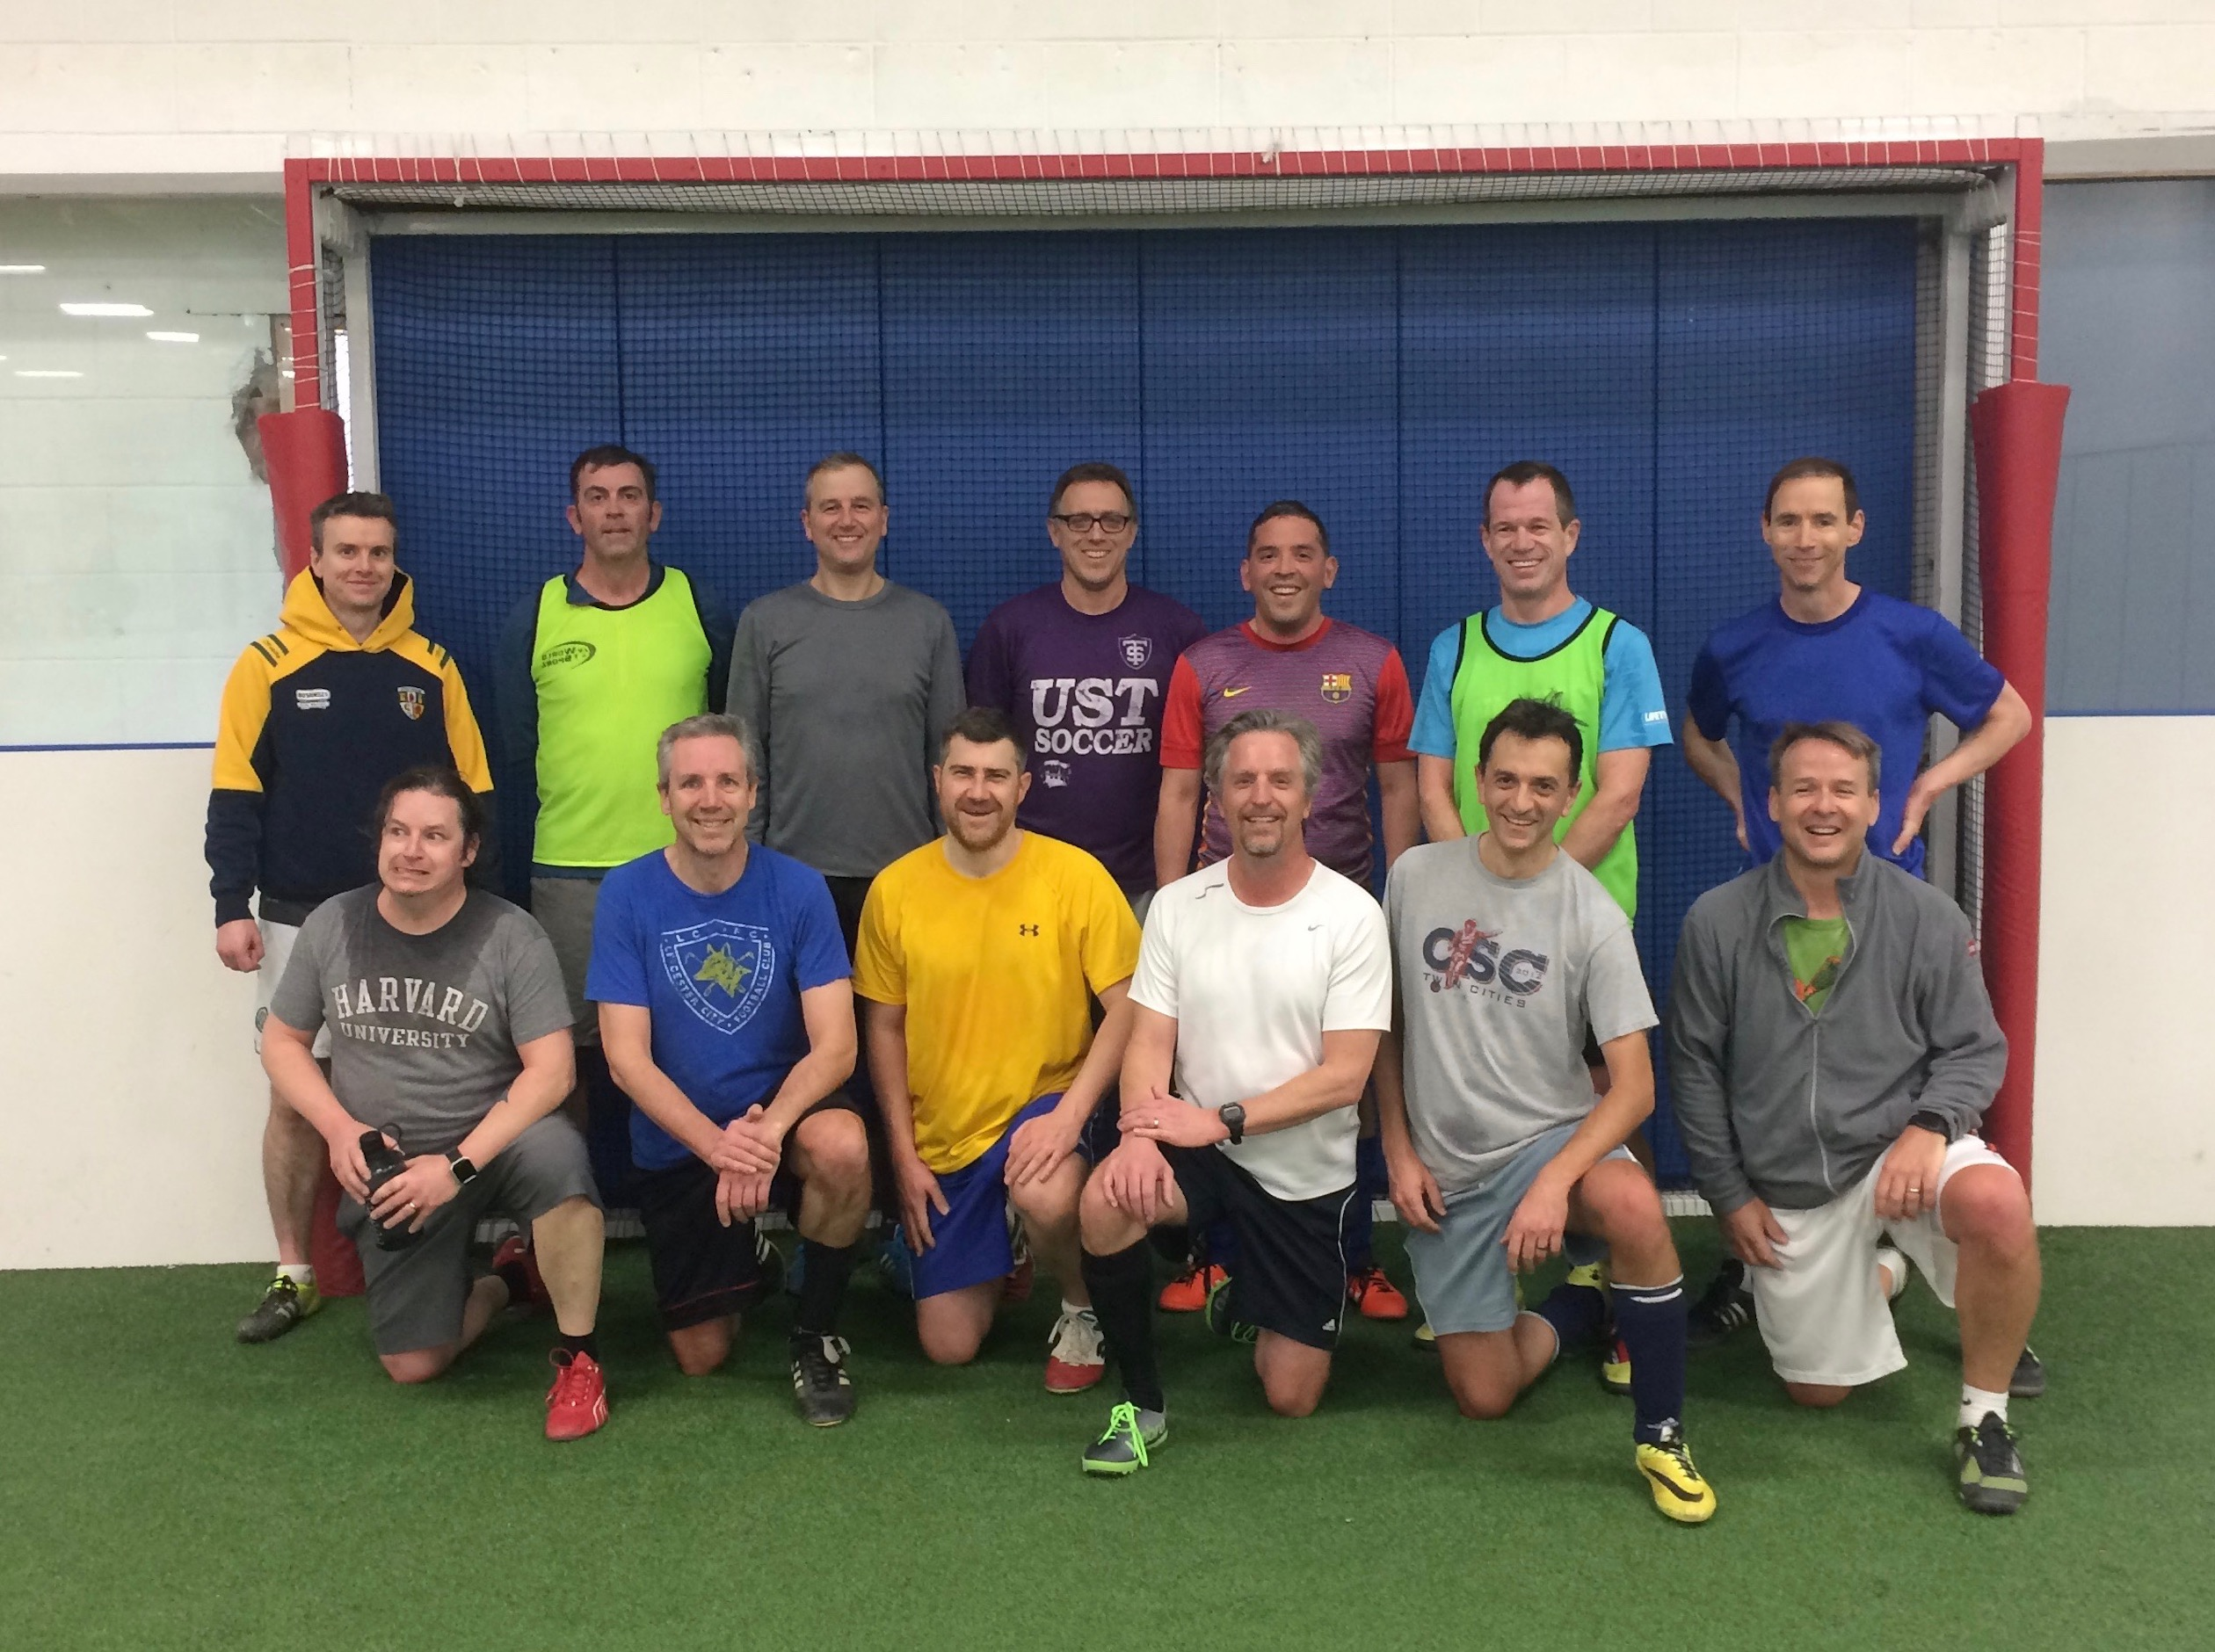 Morningside Athletic Club members after a pickup soccer game. Photo courtesy Ed Mathie